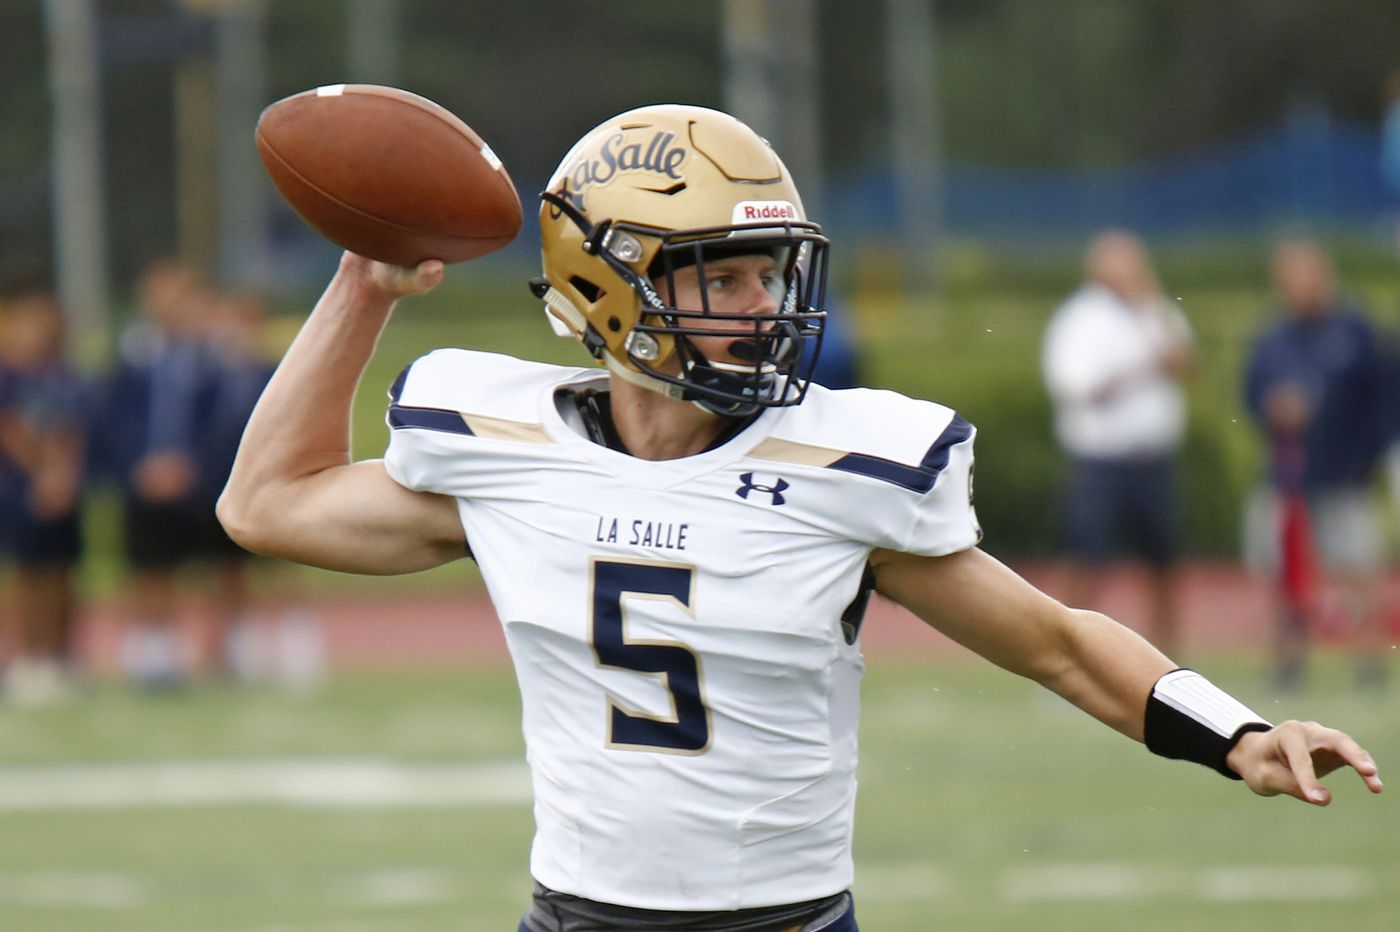 Saturday's Southeastern Pa. roundup: La Salle football rolls past Haverford School